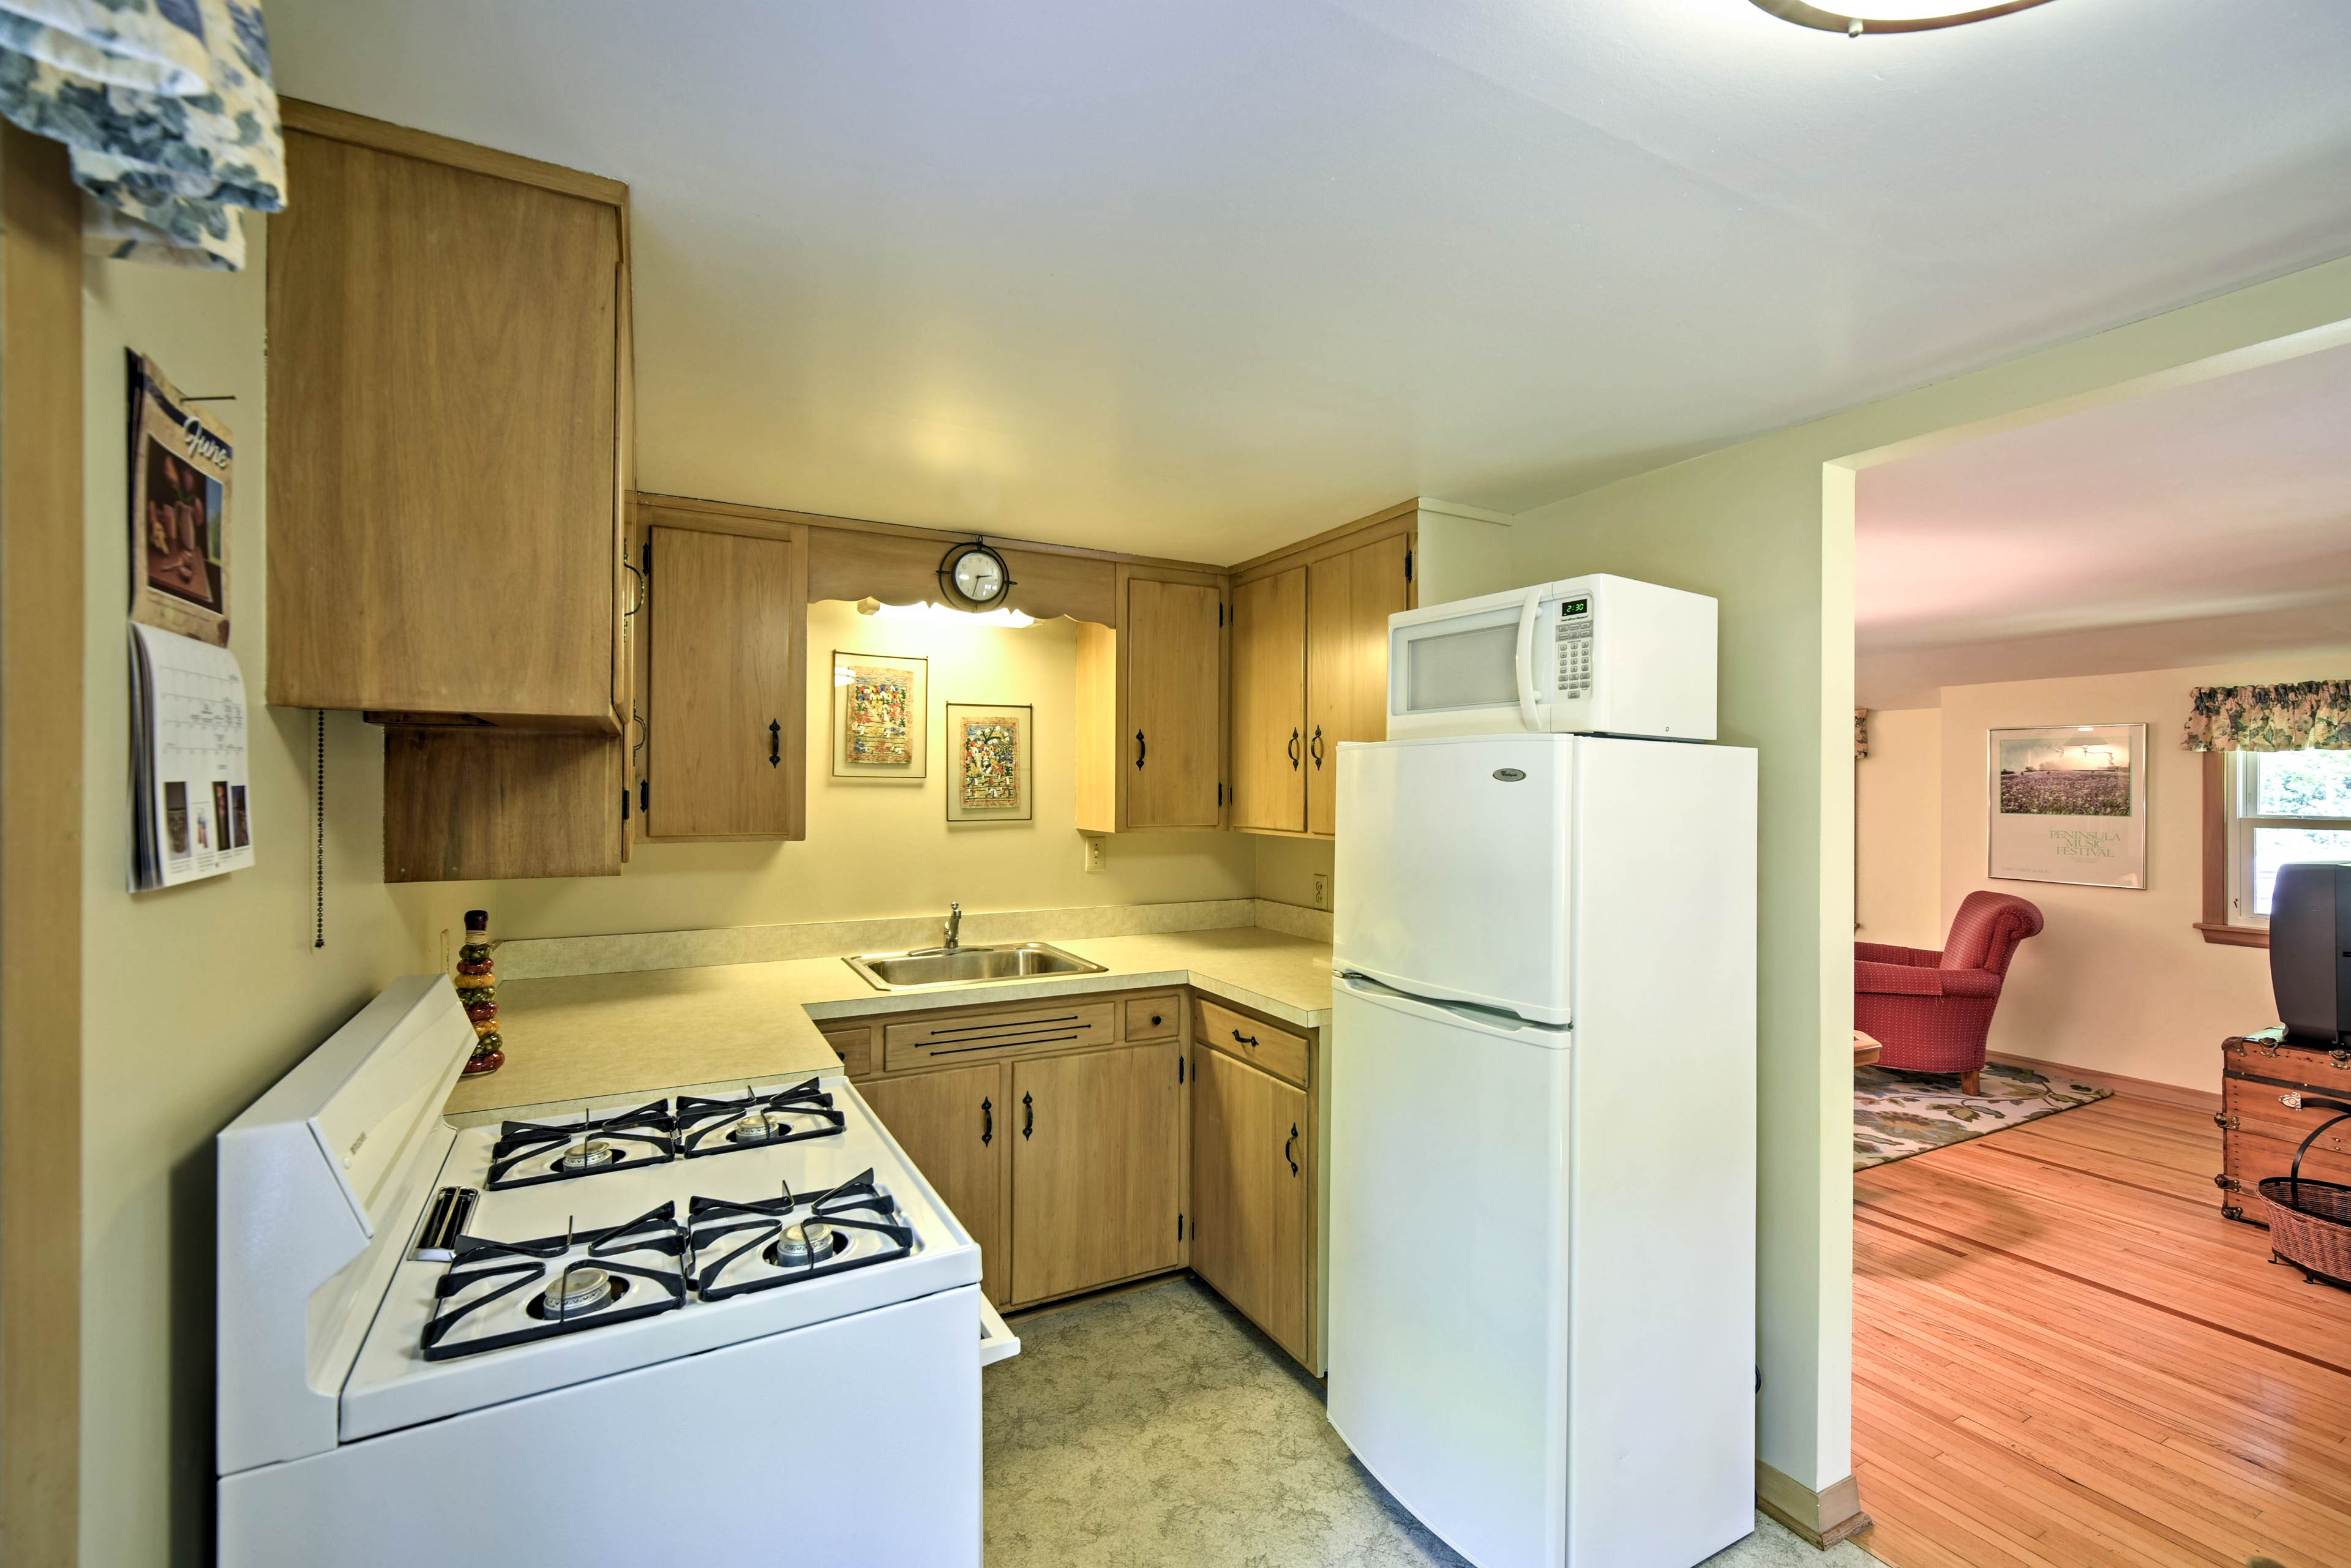 You can prepare family-favorites in the fully equipped kitchen.